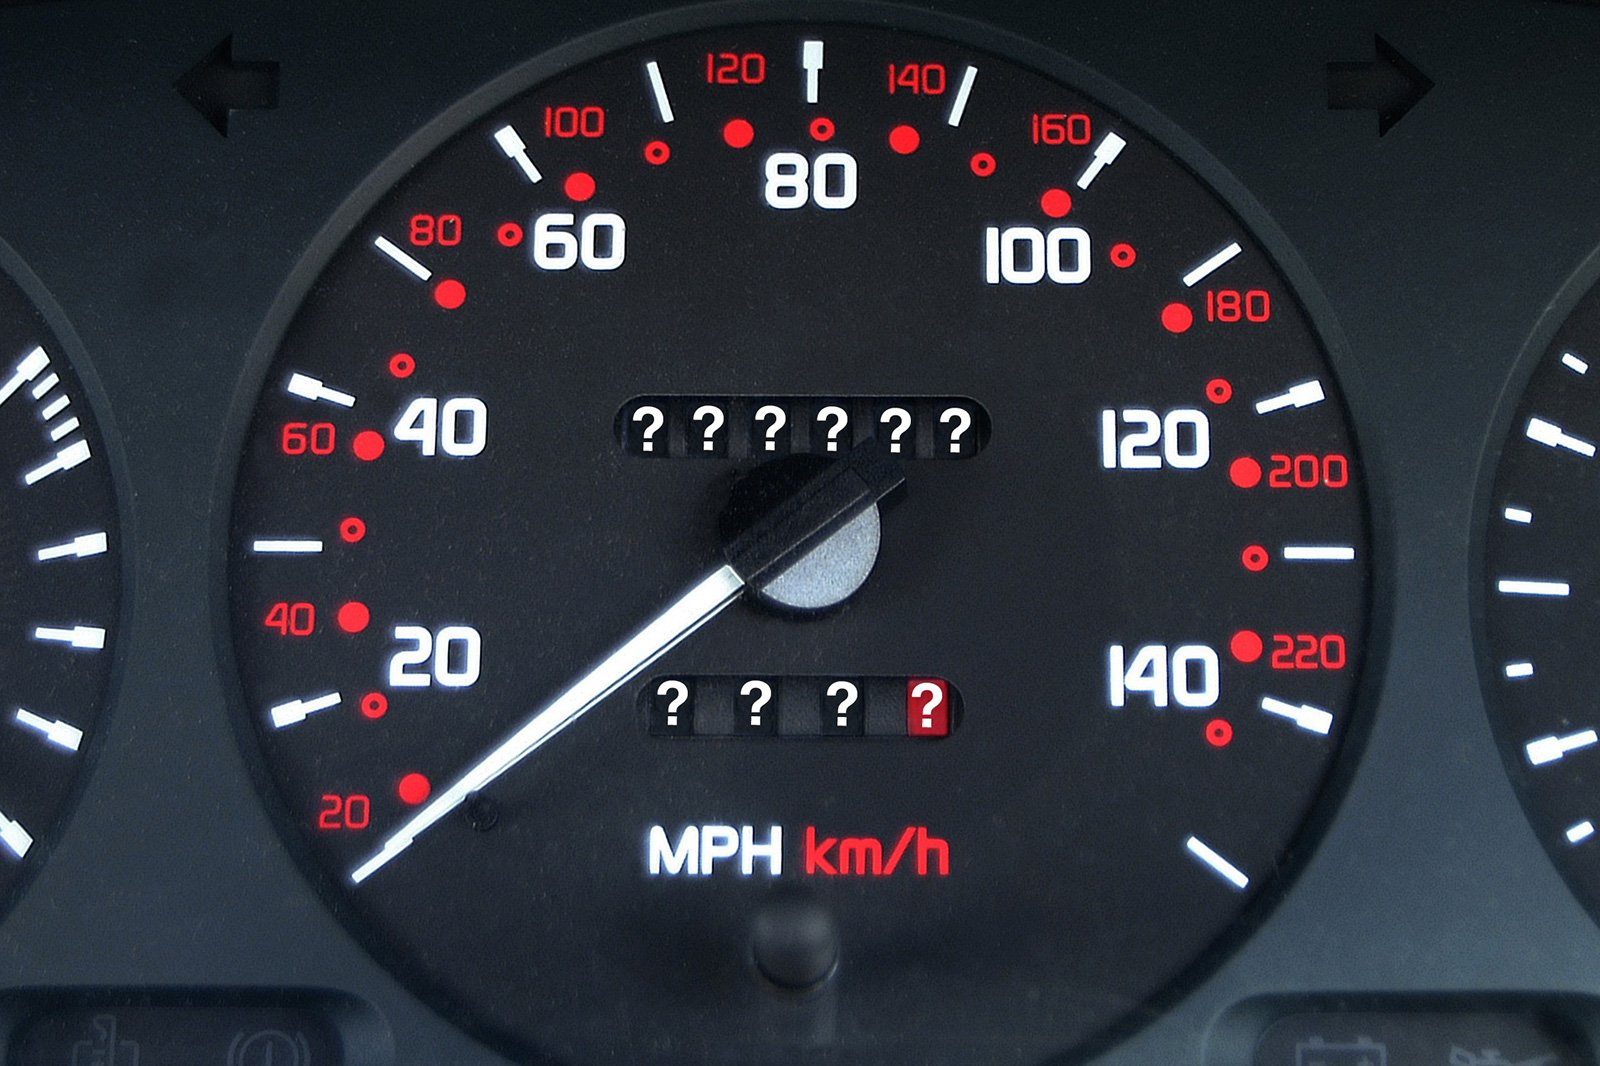 Car clocking: what is it and how can I avoid it? | What Car?